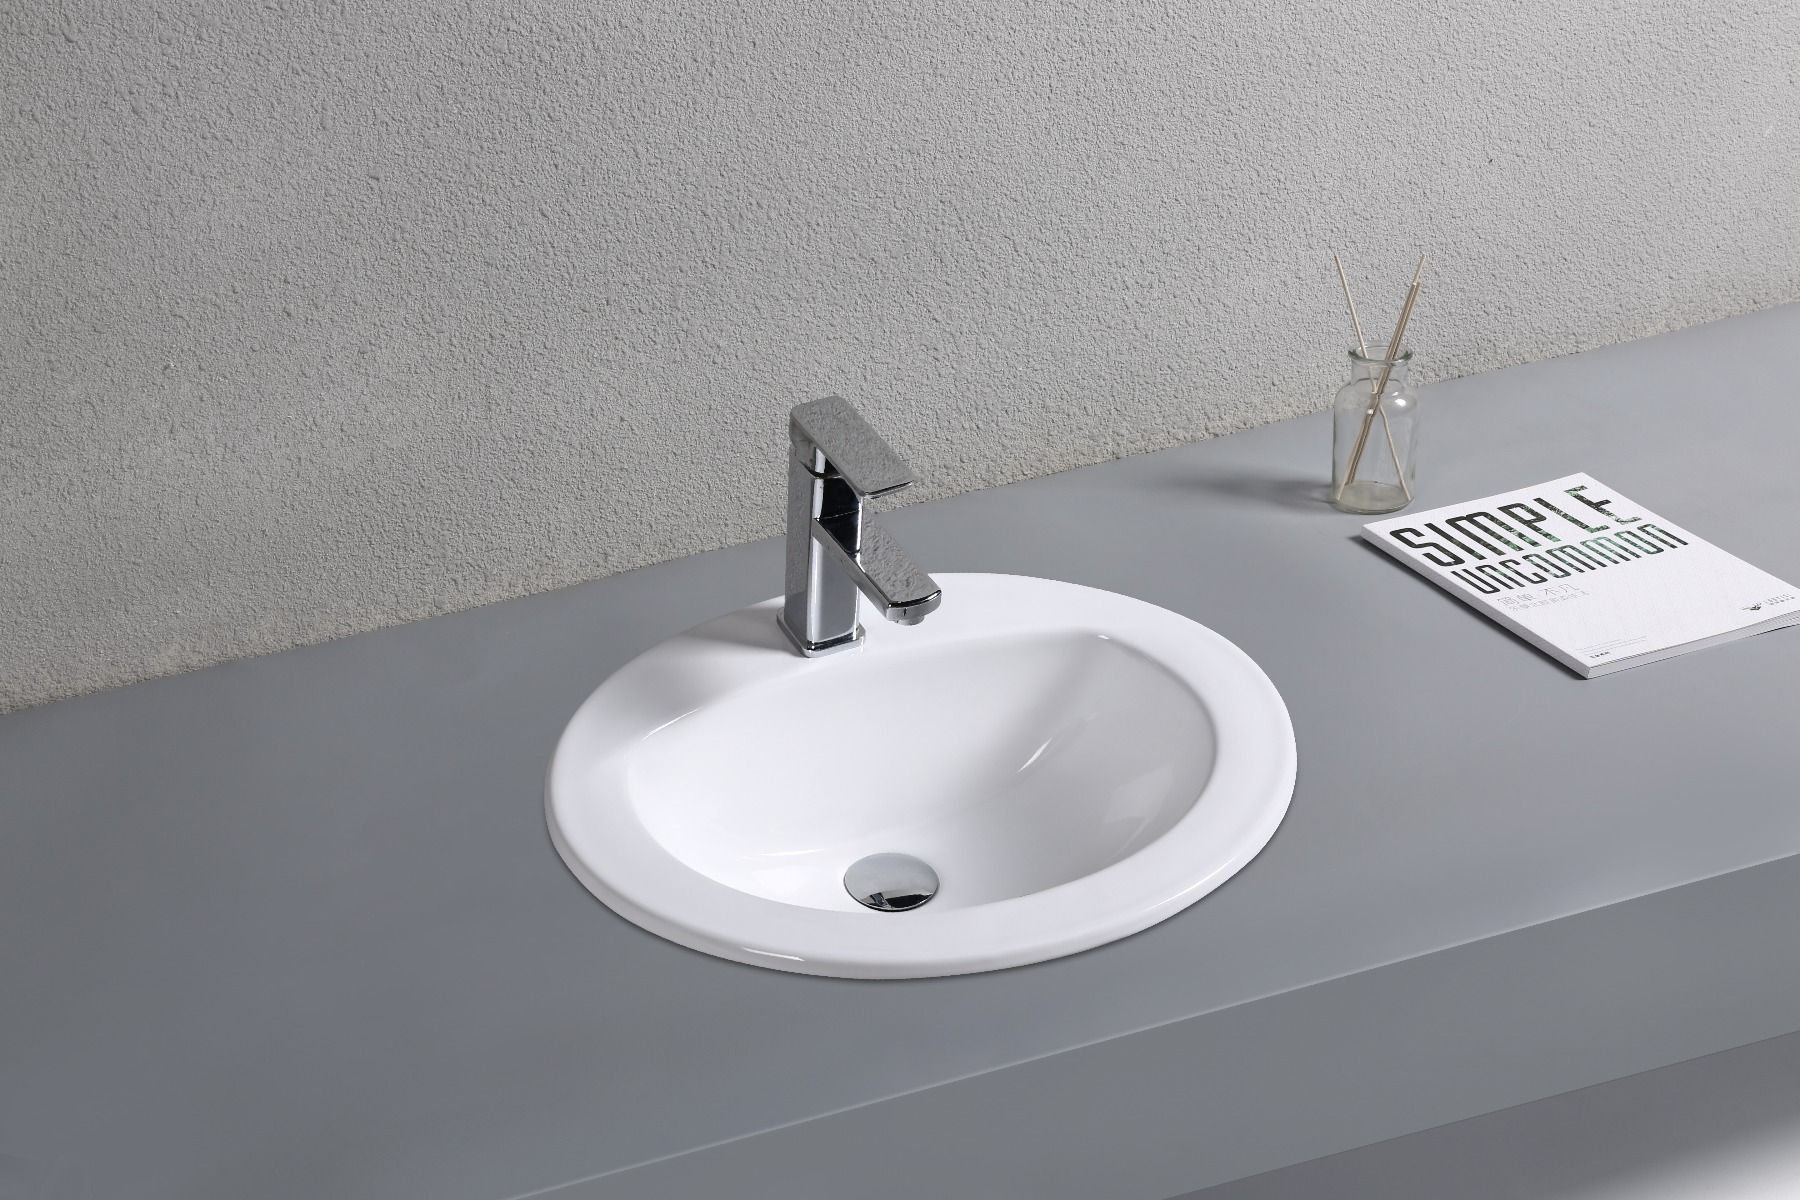 Sink Drain Fitting and replacement